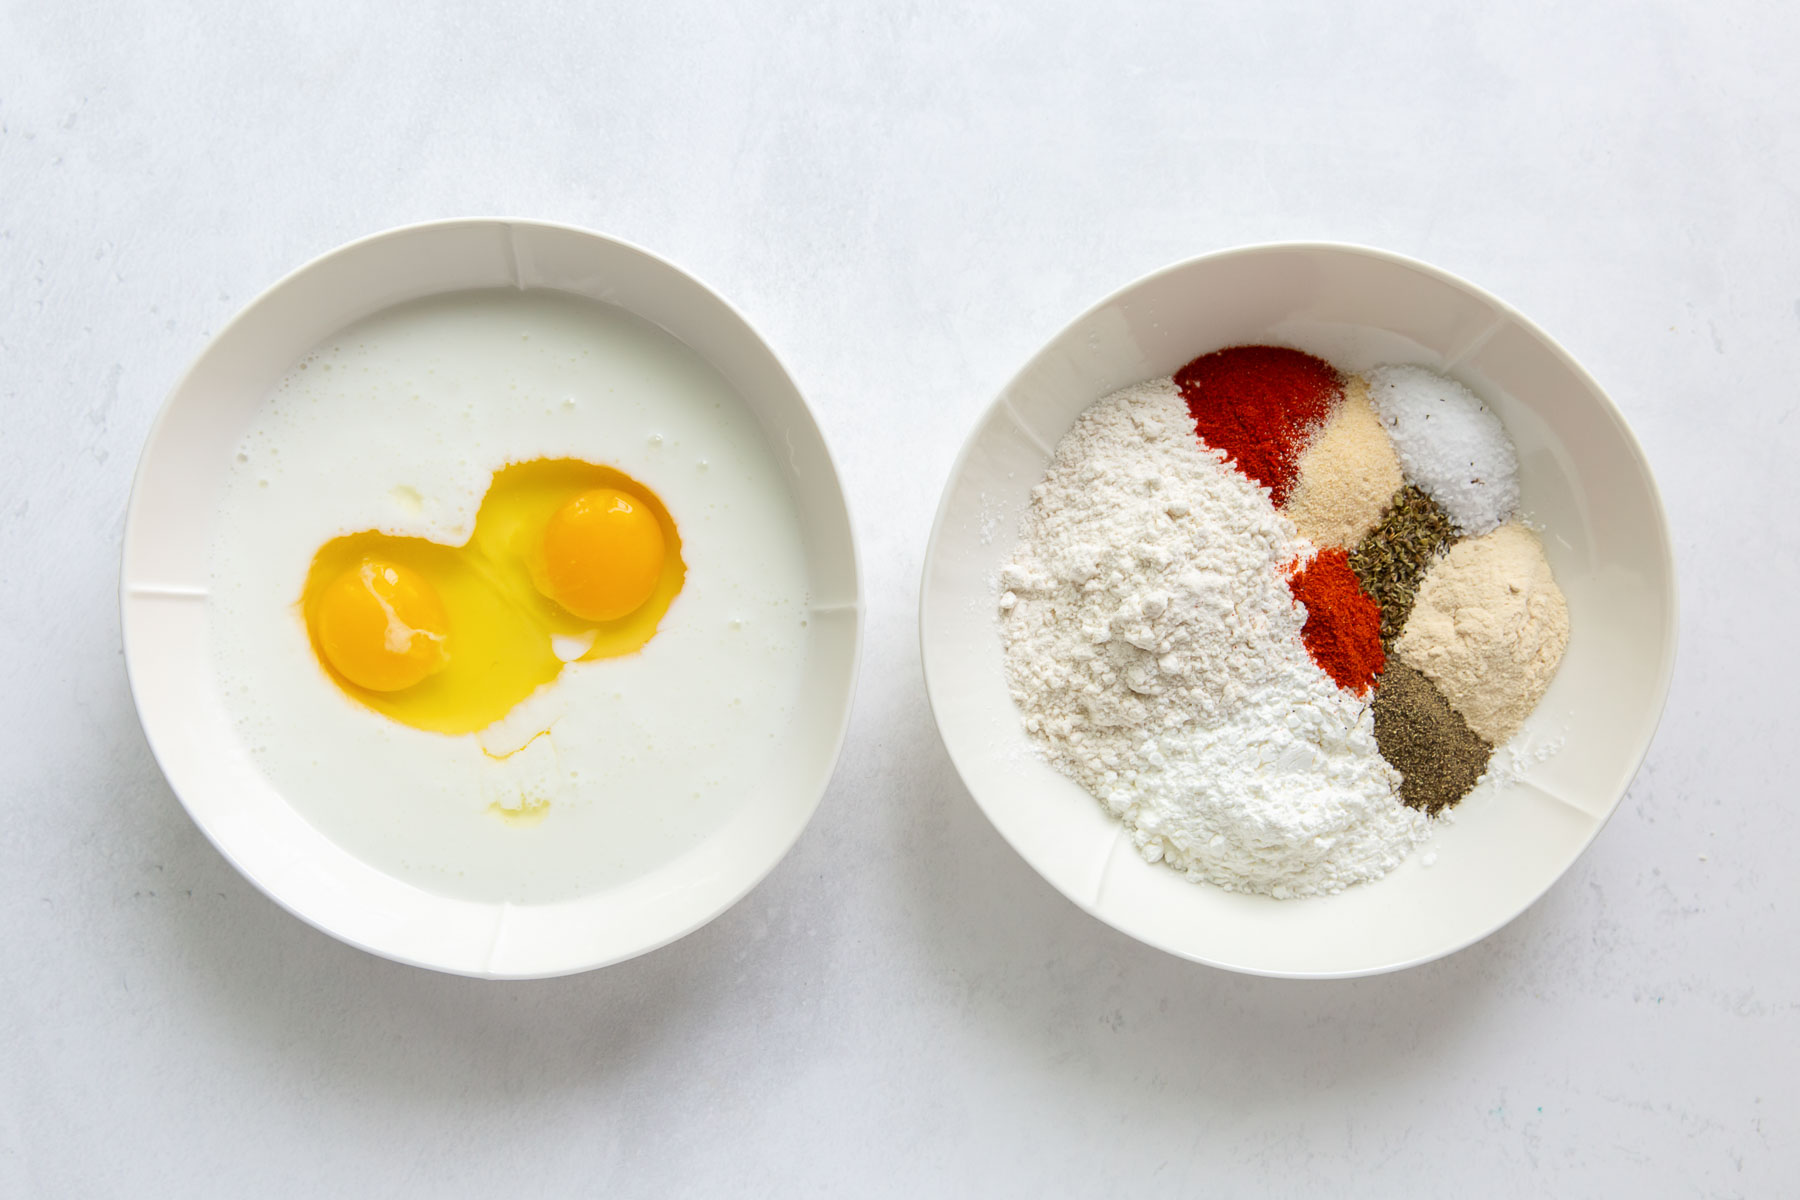 Buttermilk and eggs in one bowl; flour, cornstarch and seasonings in another bowl.